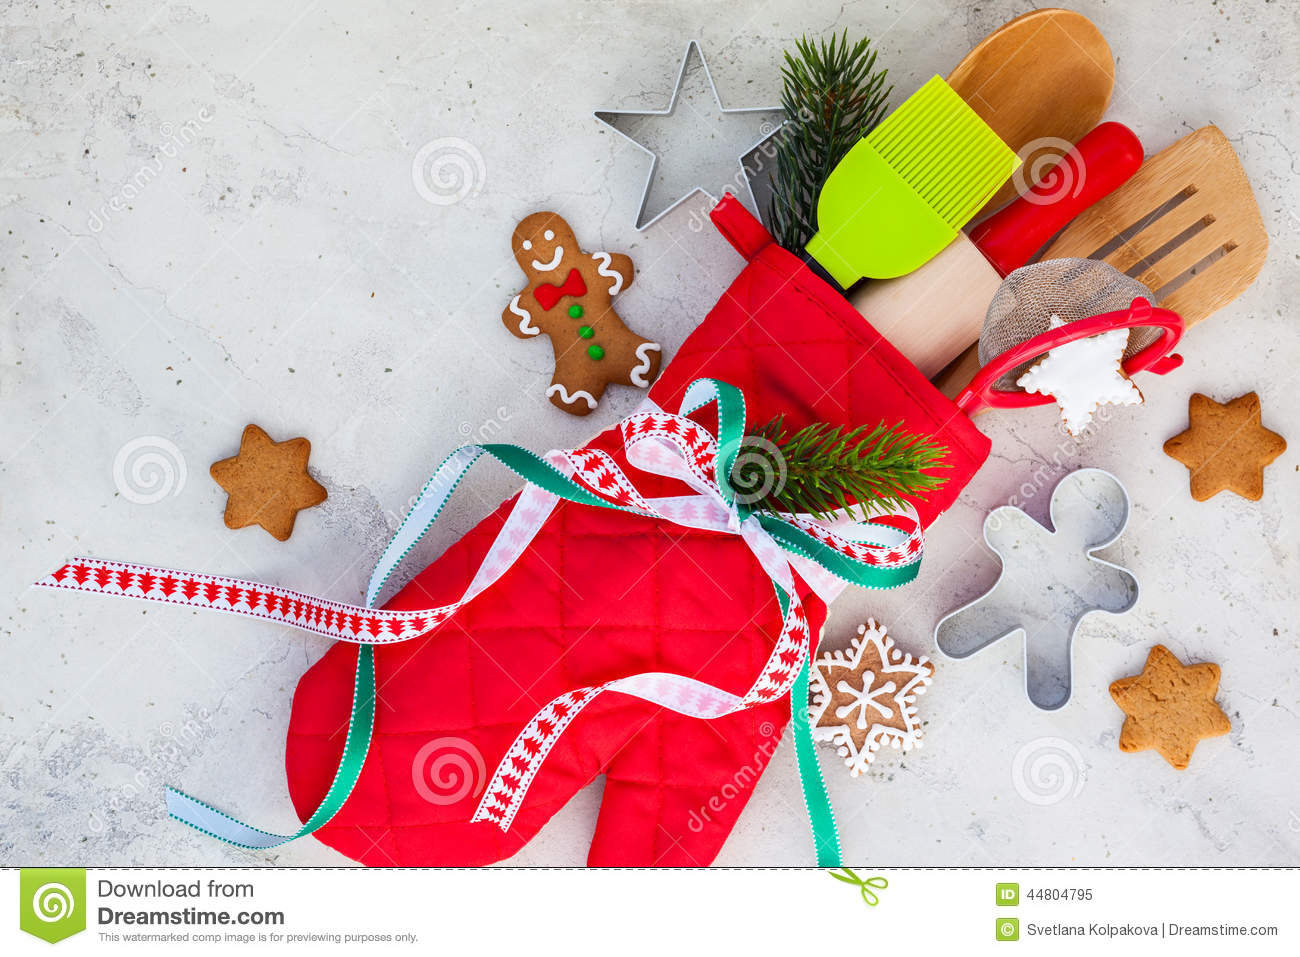 Christmas gift wrapping idea stock photo image 44804795 for Christmas gift ideas from the kitchen